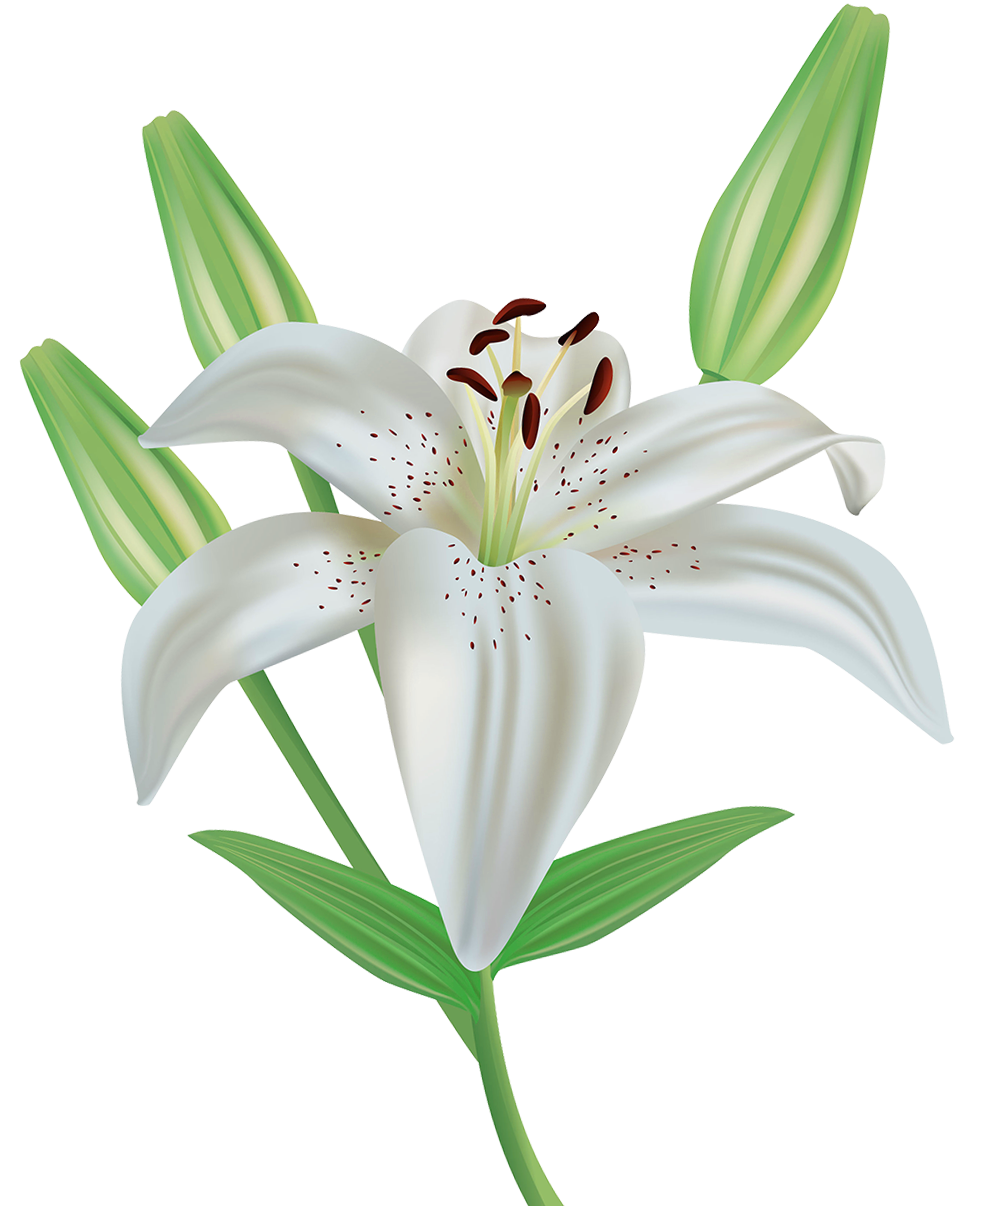 Clipart image gallery yopriceville. Lily flower png